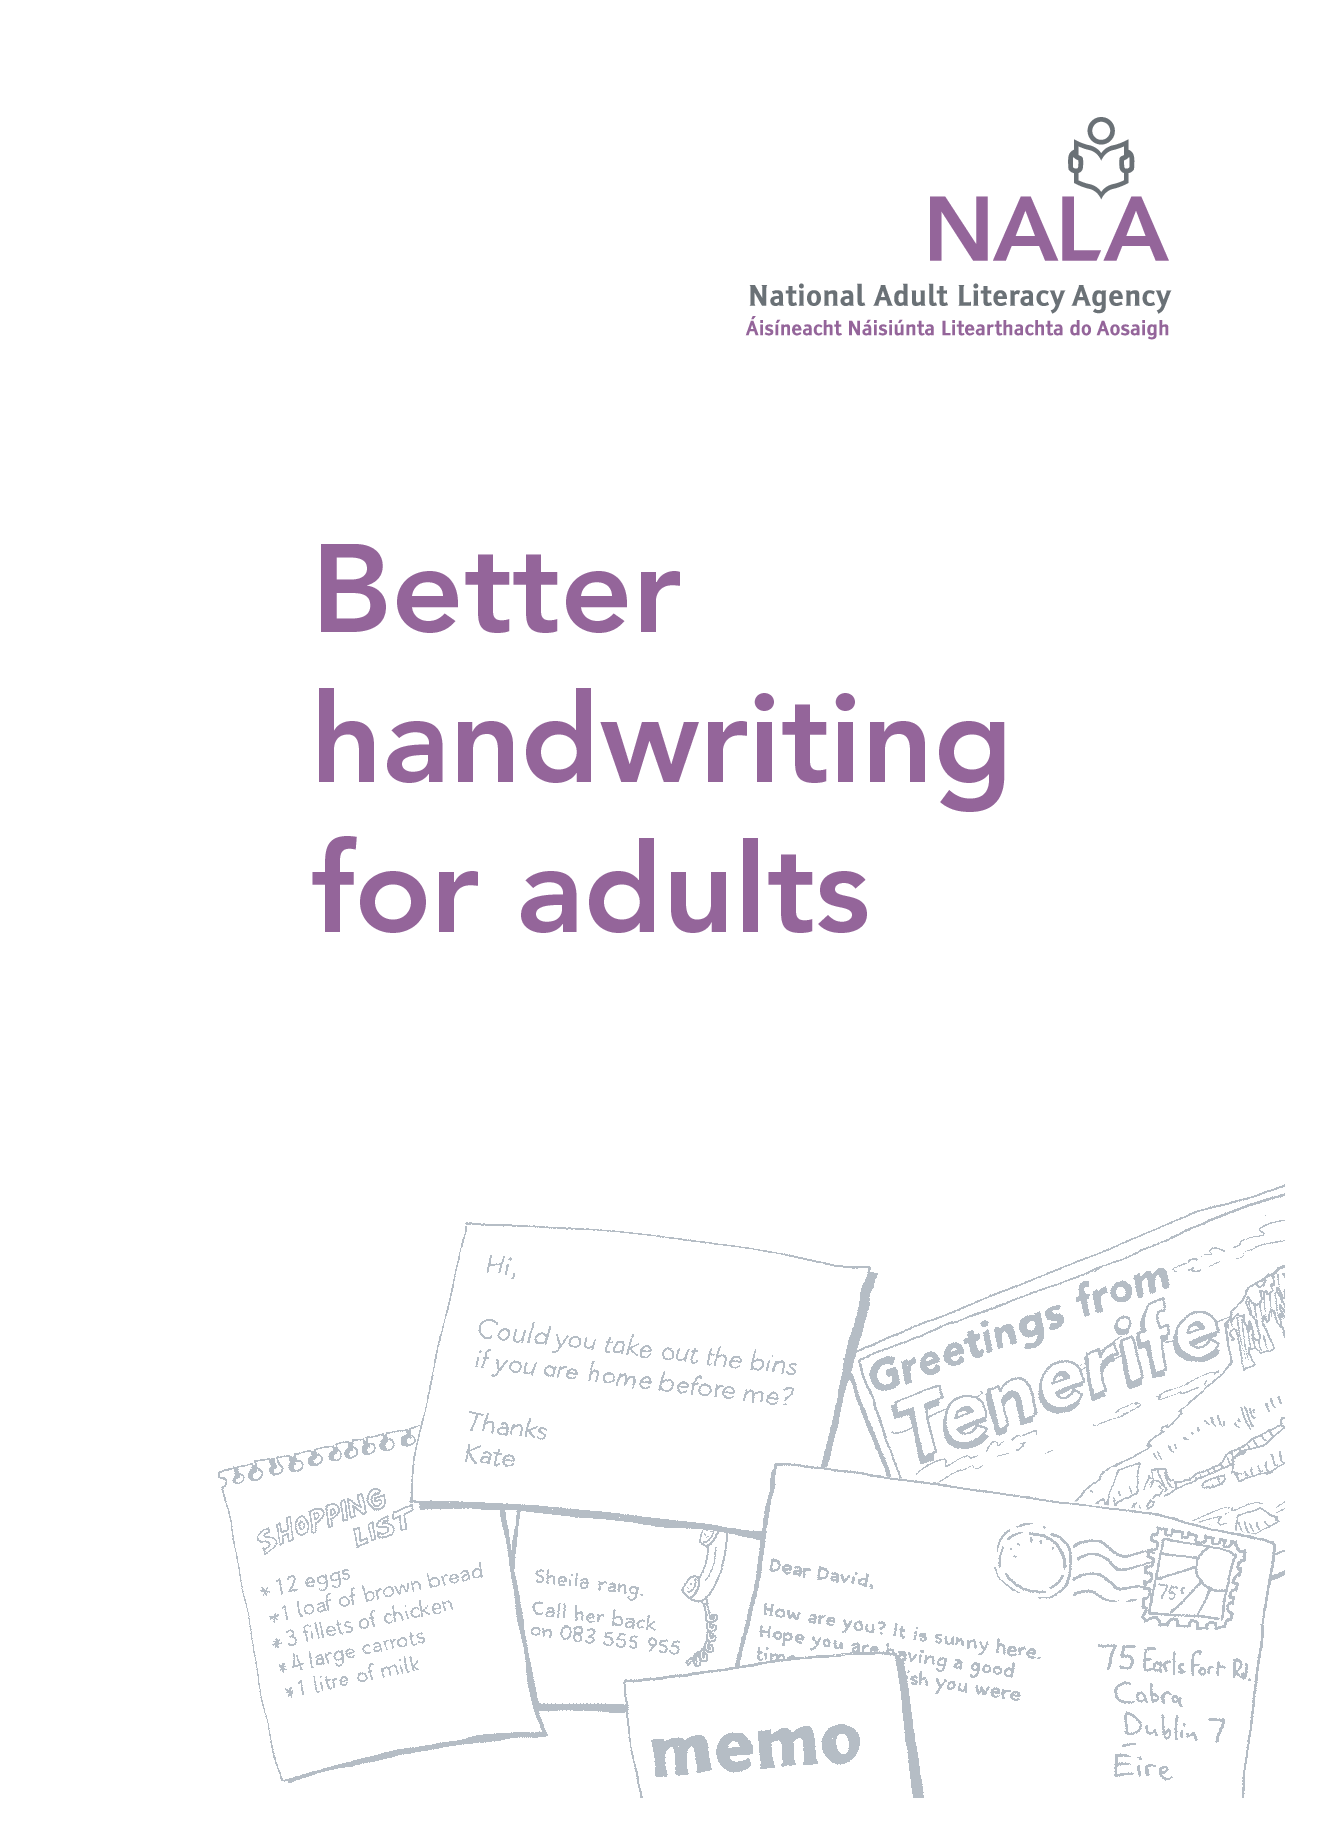 Worksheets Handwriting Worksheets For Adults handwriting practice for adults improve worksheets alults